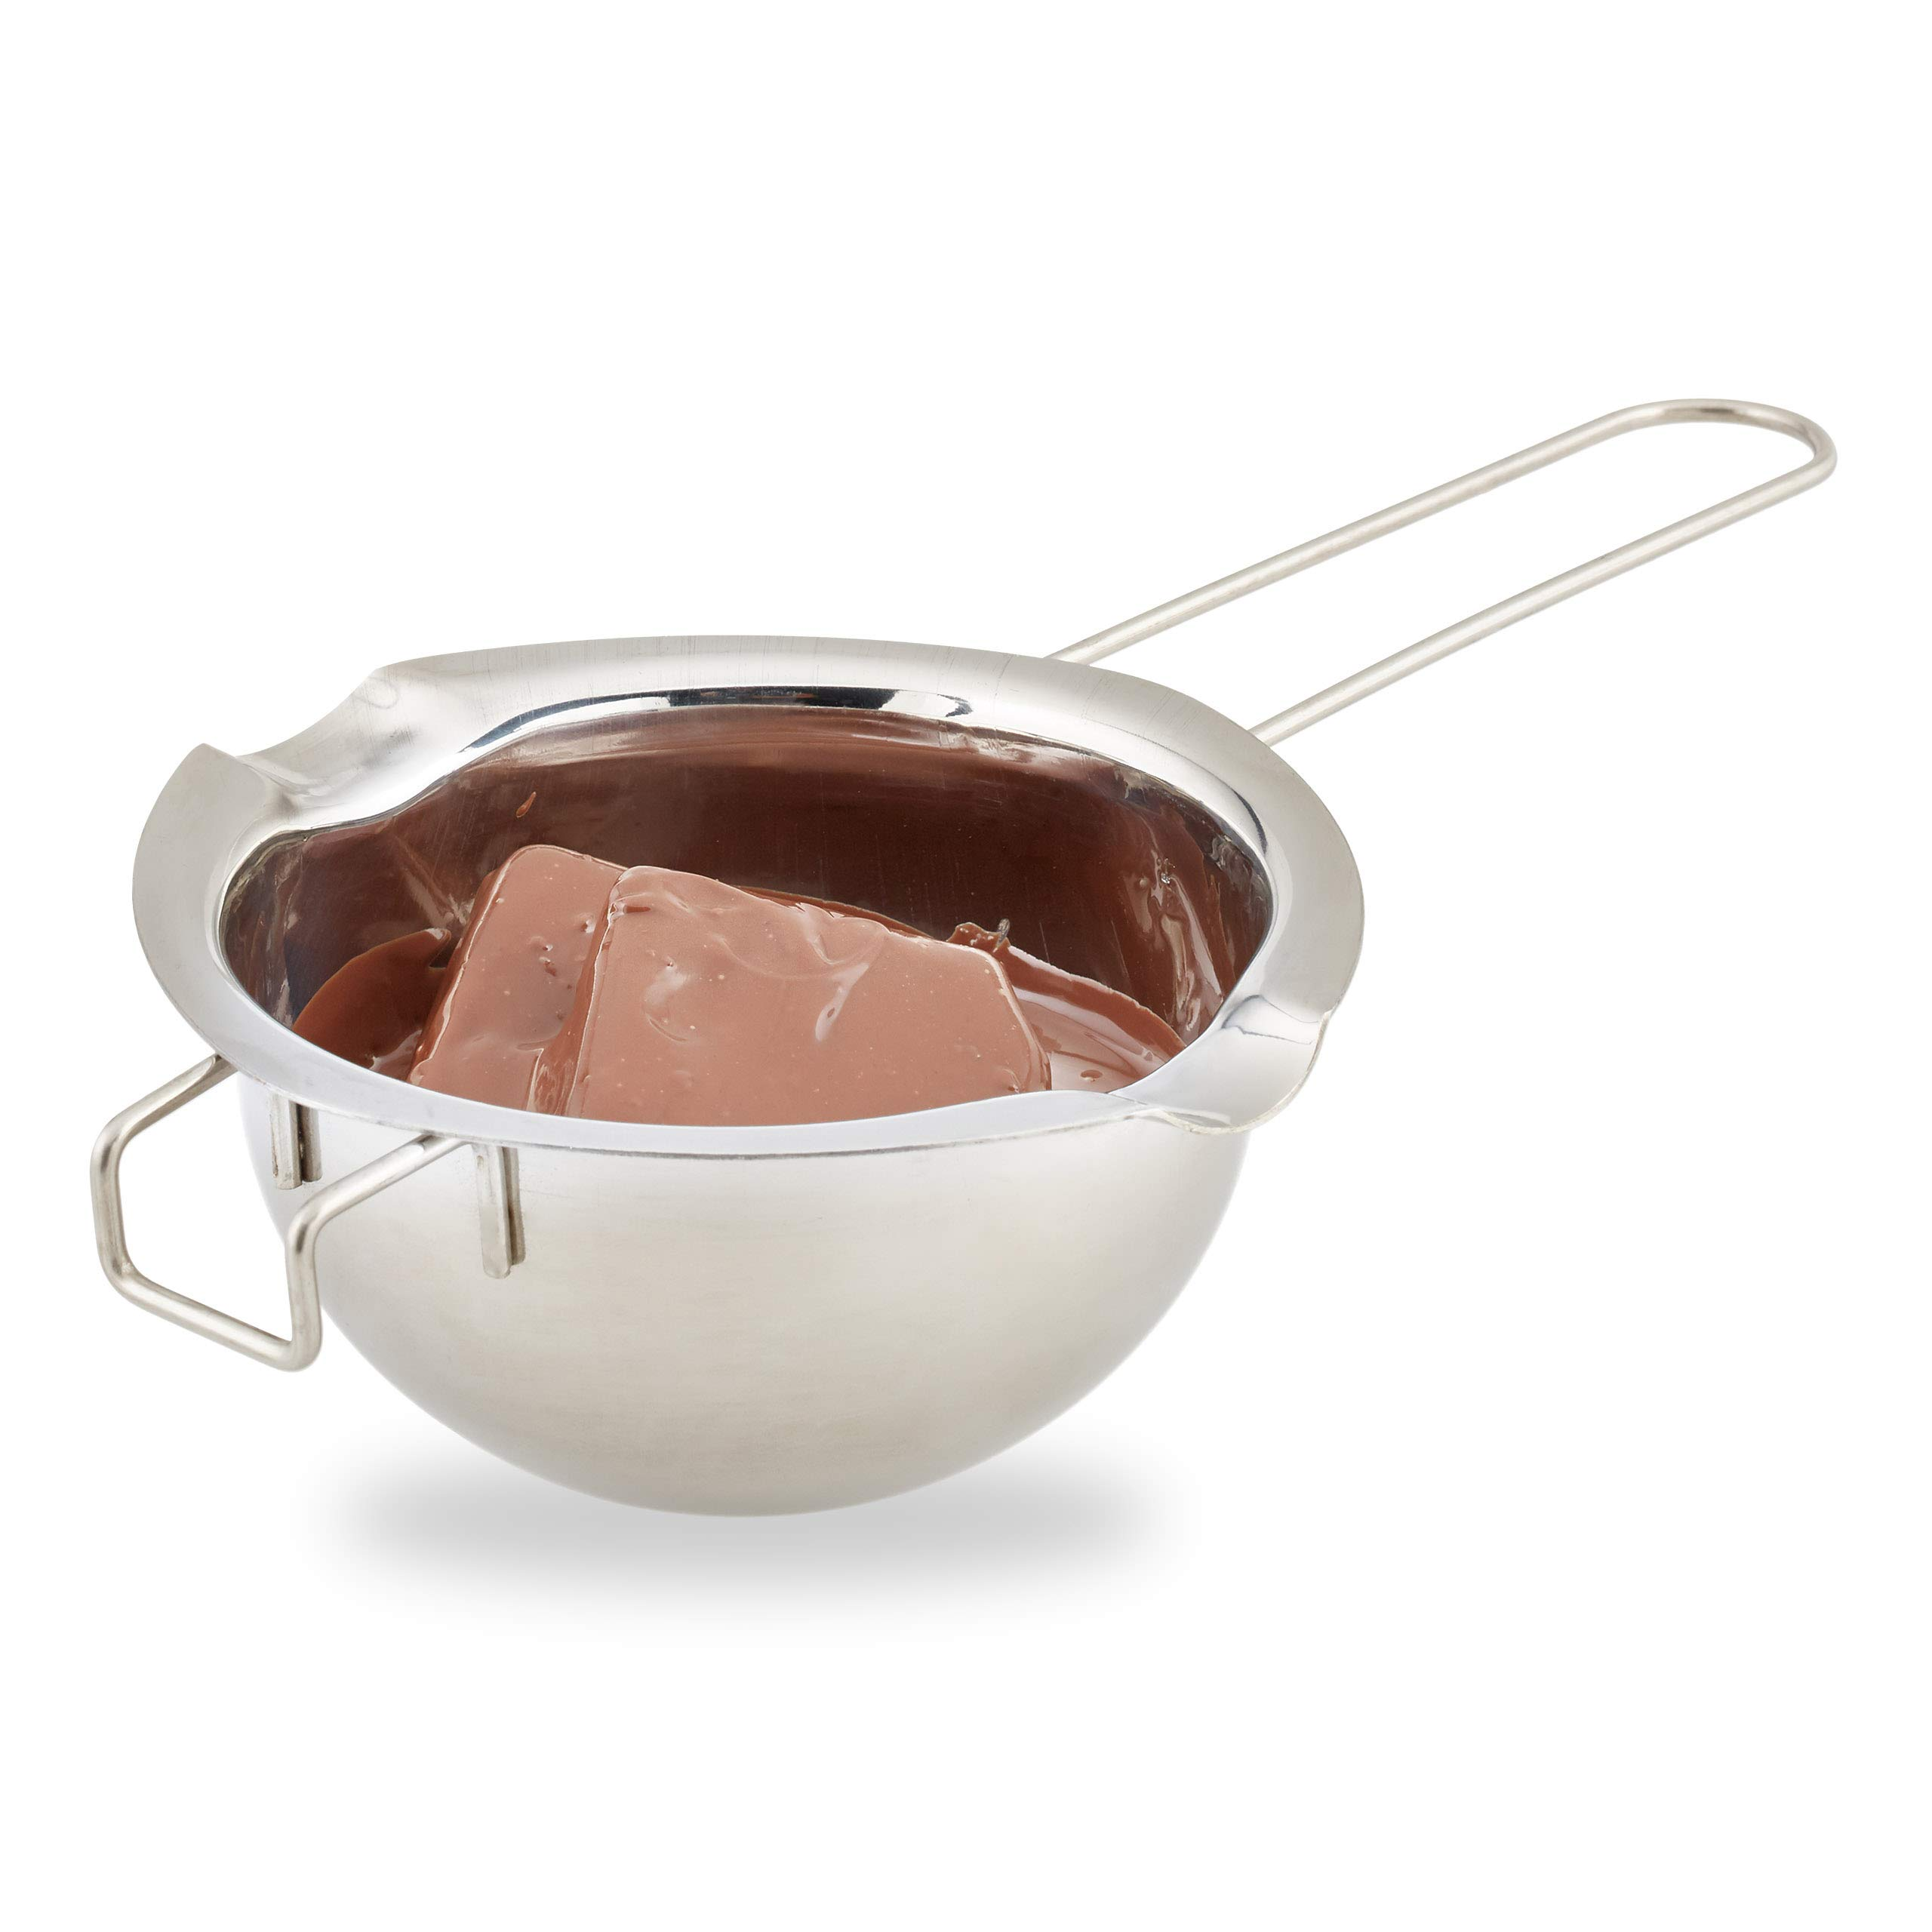 Relaxdays Stainless Steel Melting Pot, HxWxD: 6 x 24 x 14 cm, Temperature Control, Double Boiler for Butter, Metal, Silver